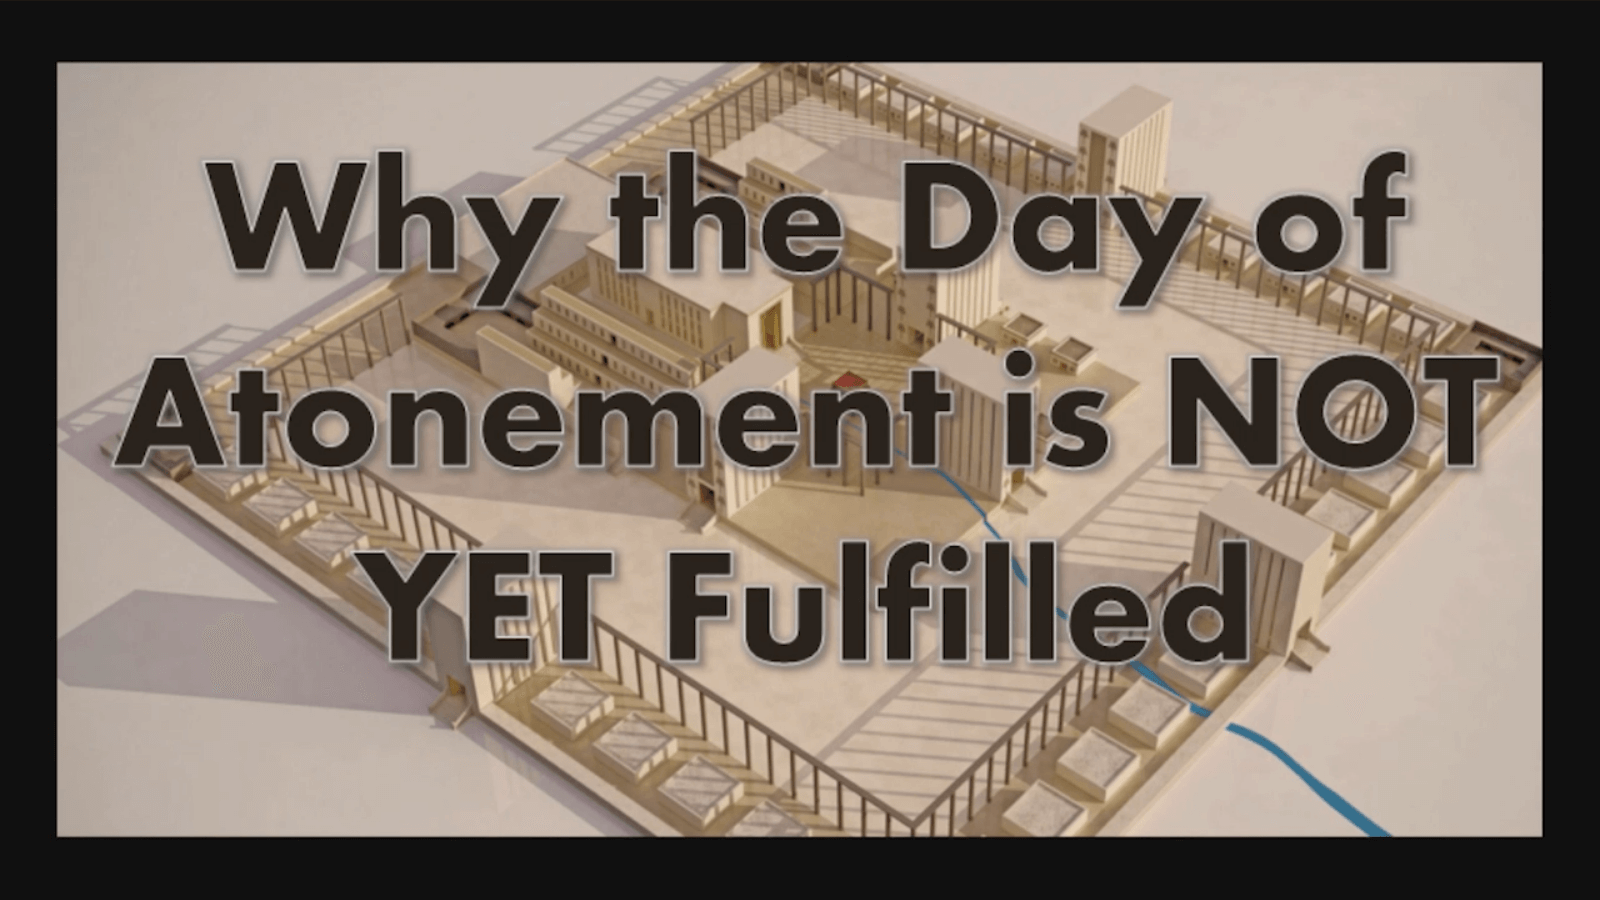 Why the Day of Atonement is NOT YET Fulfilled